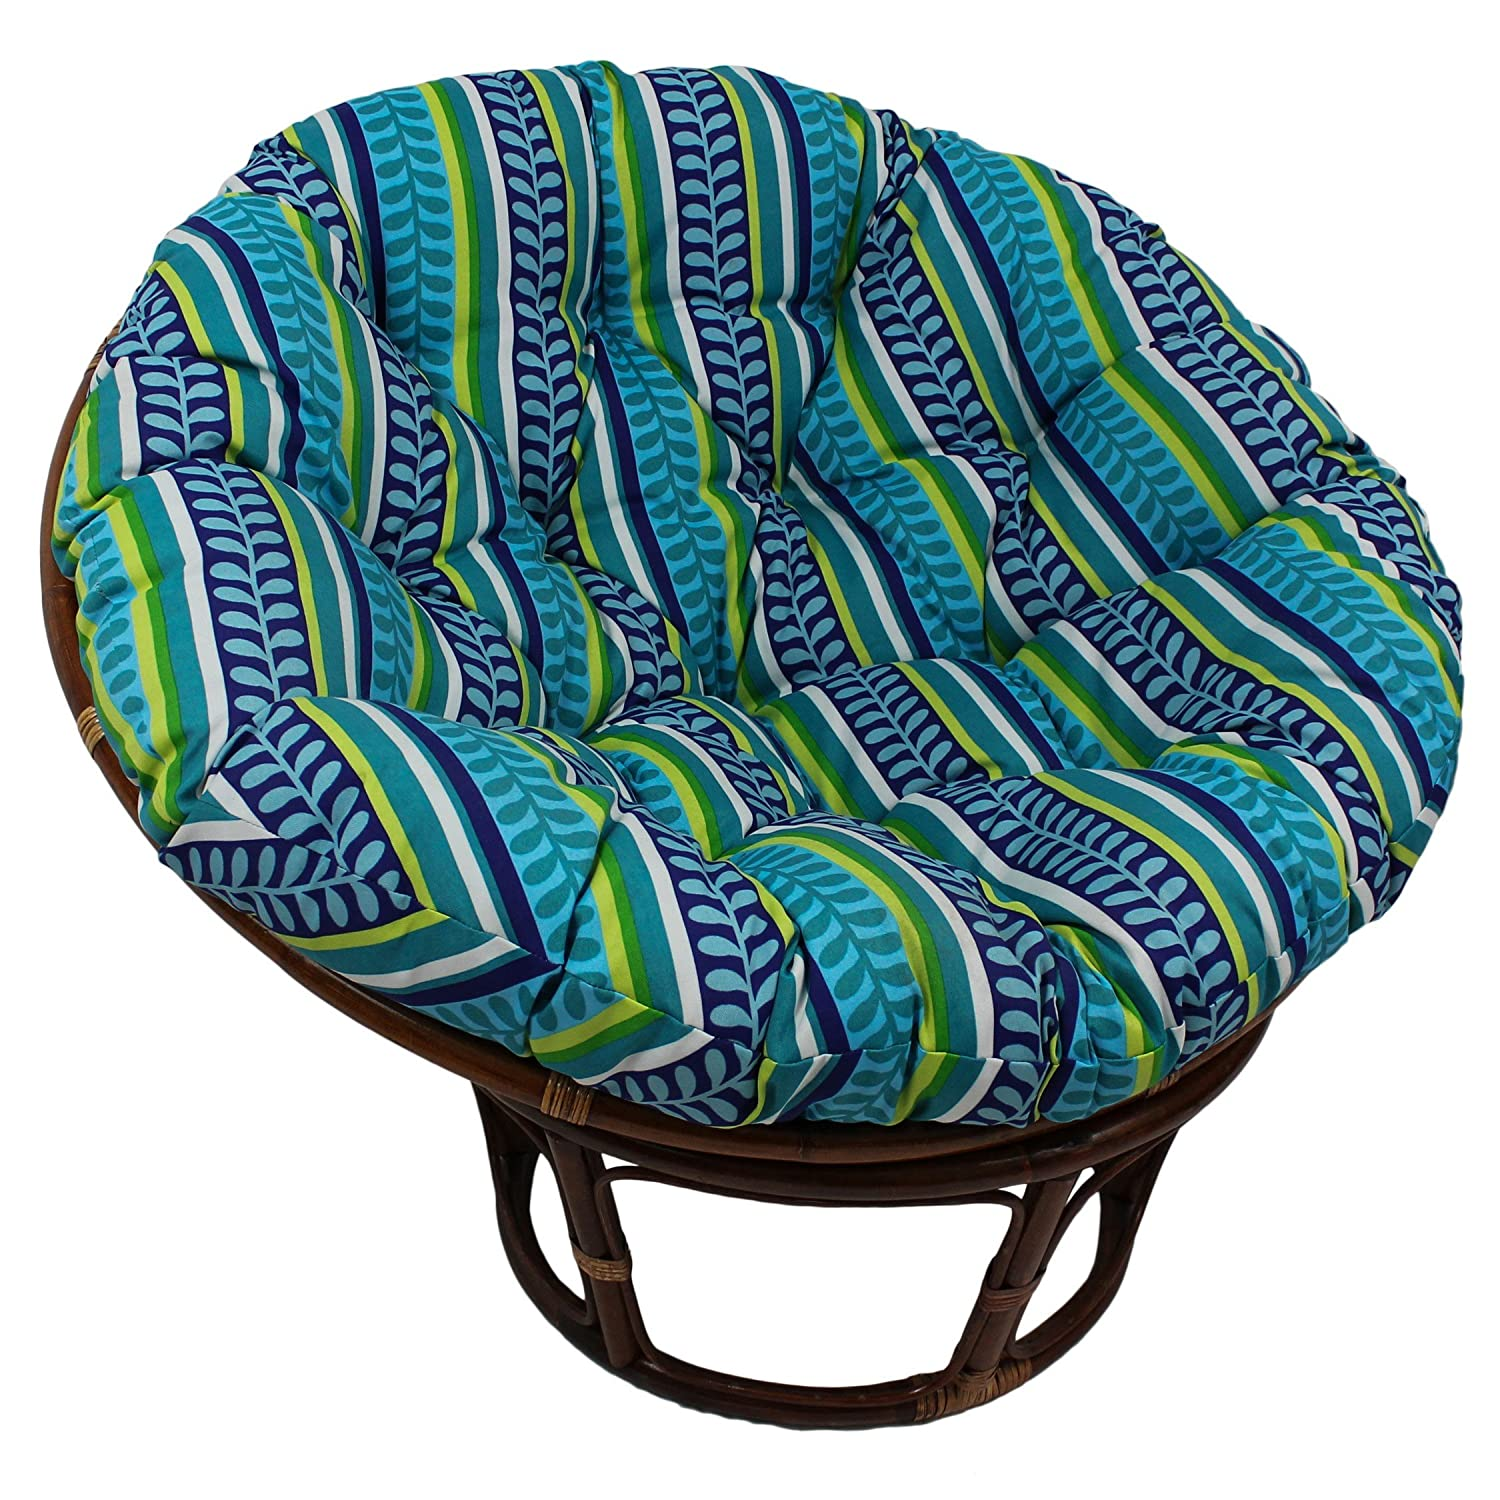 Blazing Needles Patterned Outdoor Spun Polyester Papasan Cushion, 52 , Tucuman Ebony